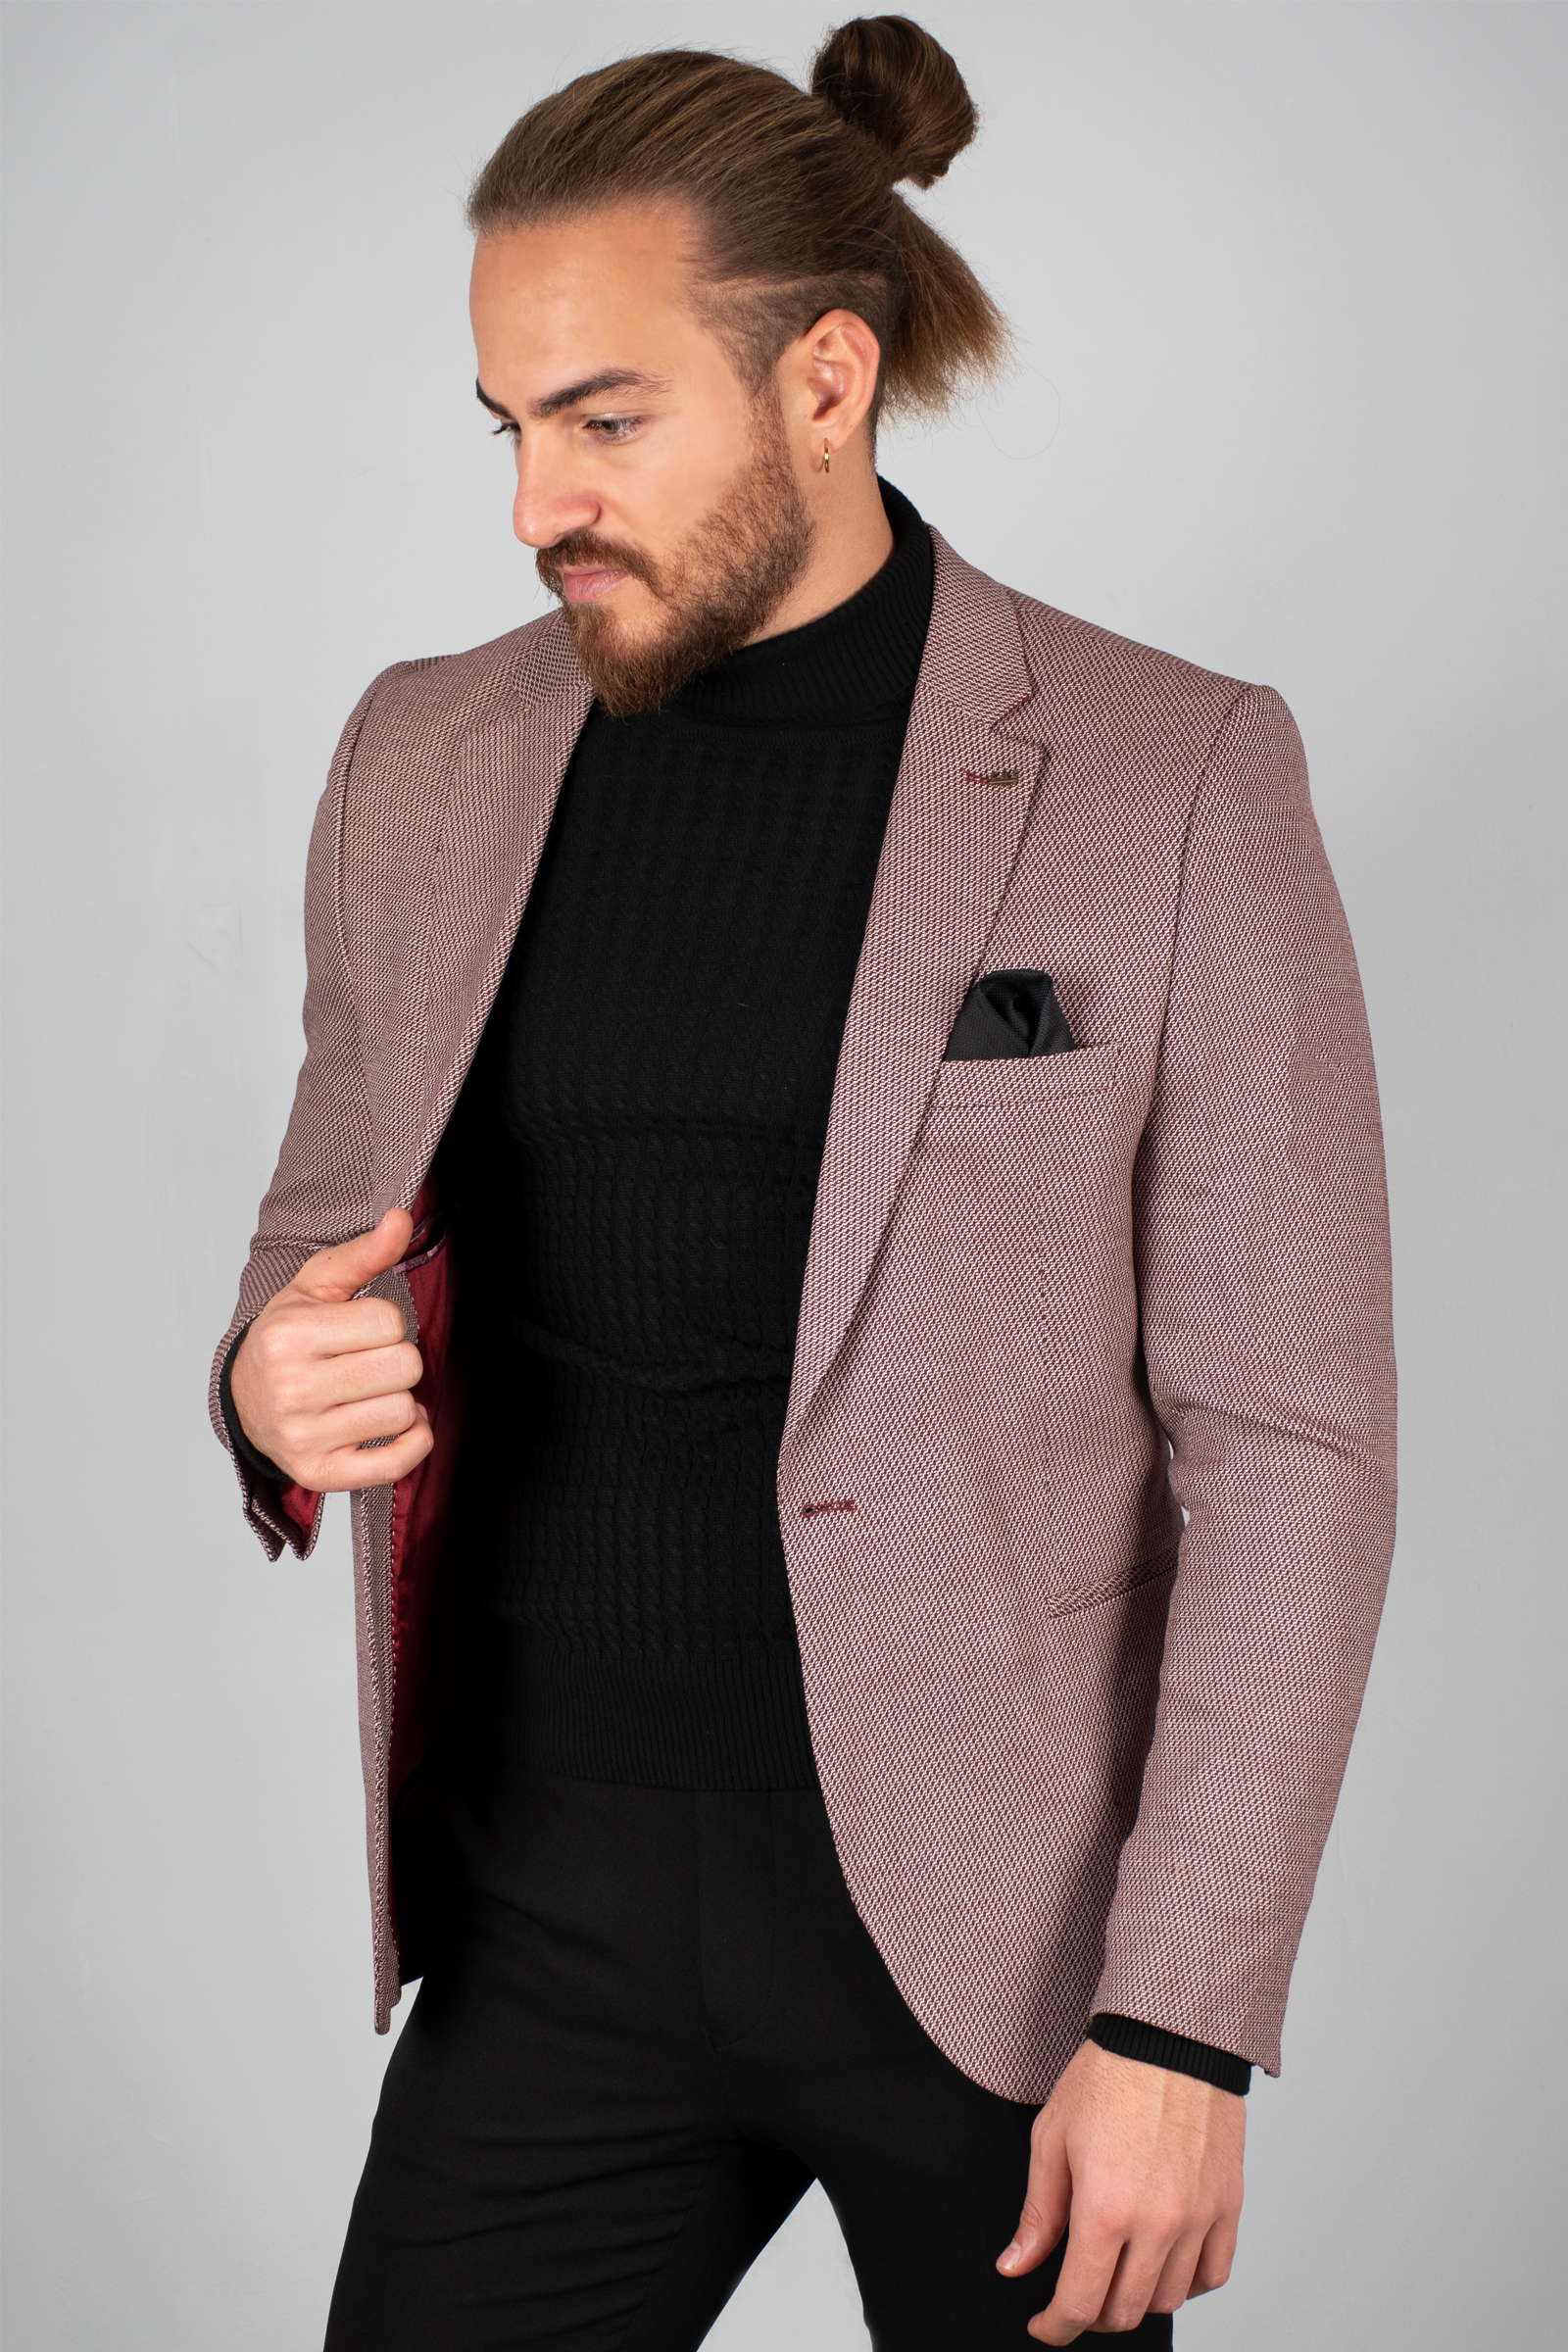 DeepSEA Burgundy Men 'S Luxury Blazer Coat Suit Jacket Tight-Fitting Mould Patterned Fabric Four Seasons Daily Groom Wedding Business 2002123 1